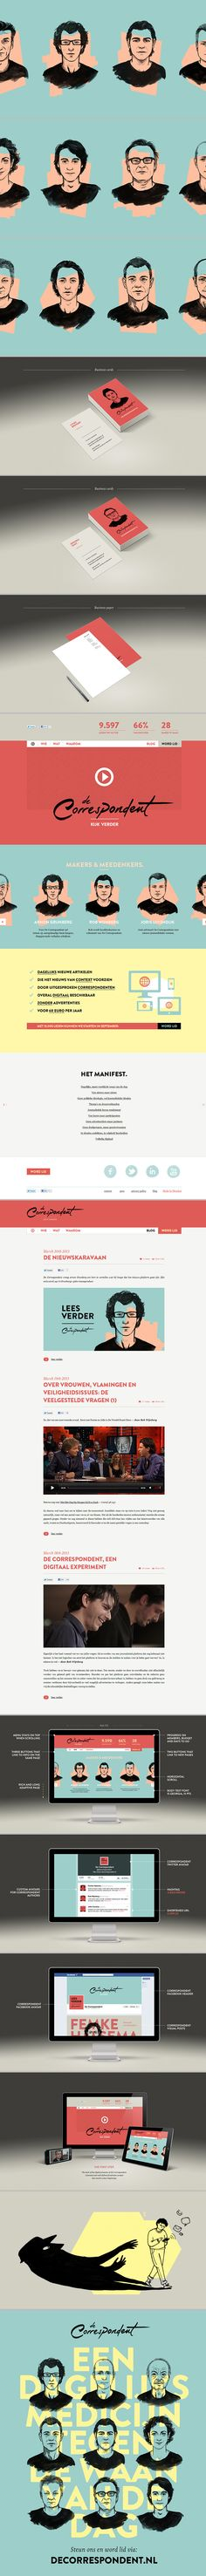 De Correspondent identity and website by Momkai